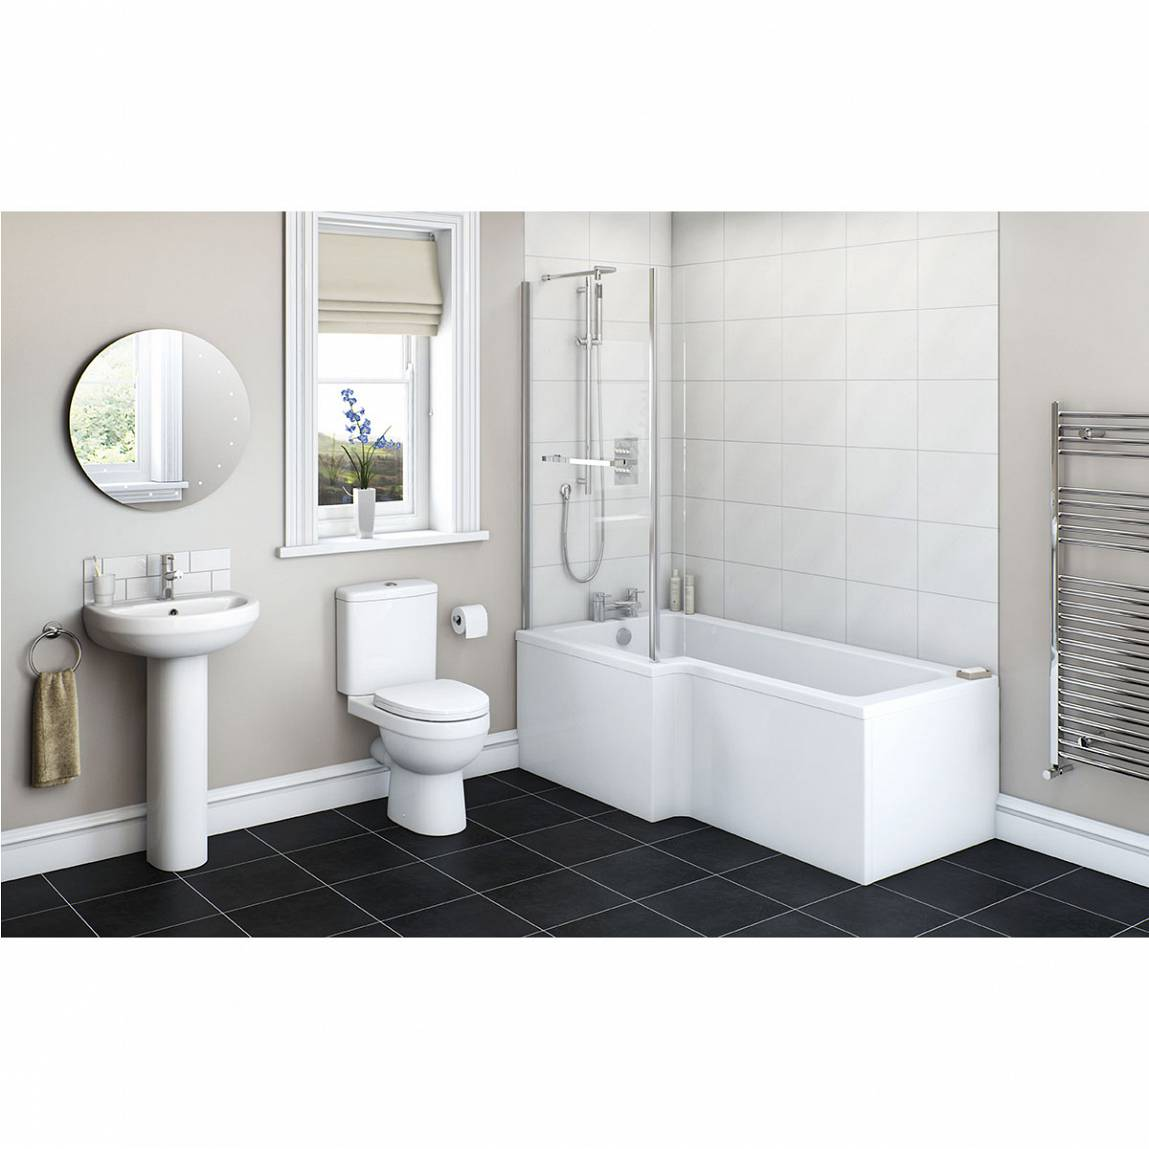 Image of Energy Bathroom Set with Boston 1500 x 850 Shower Bath Suite LH